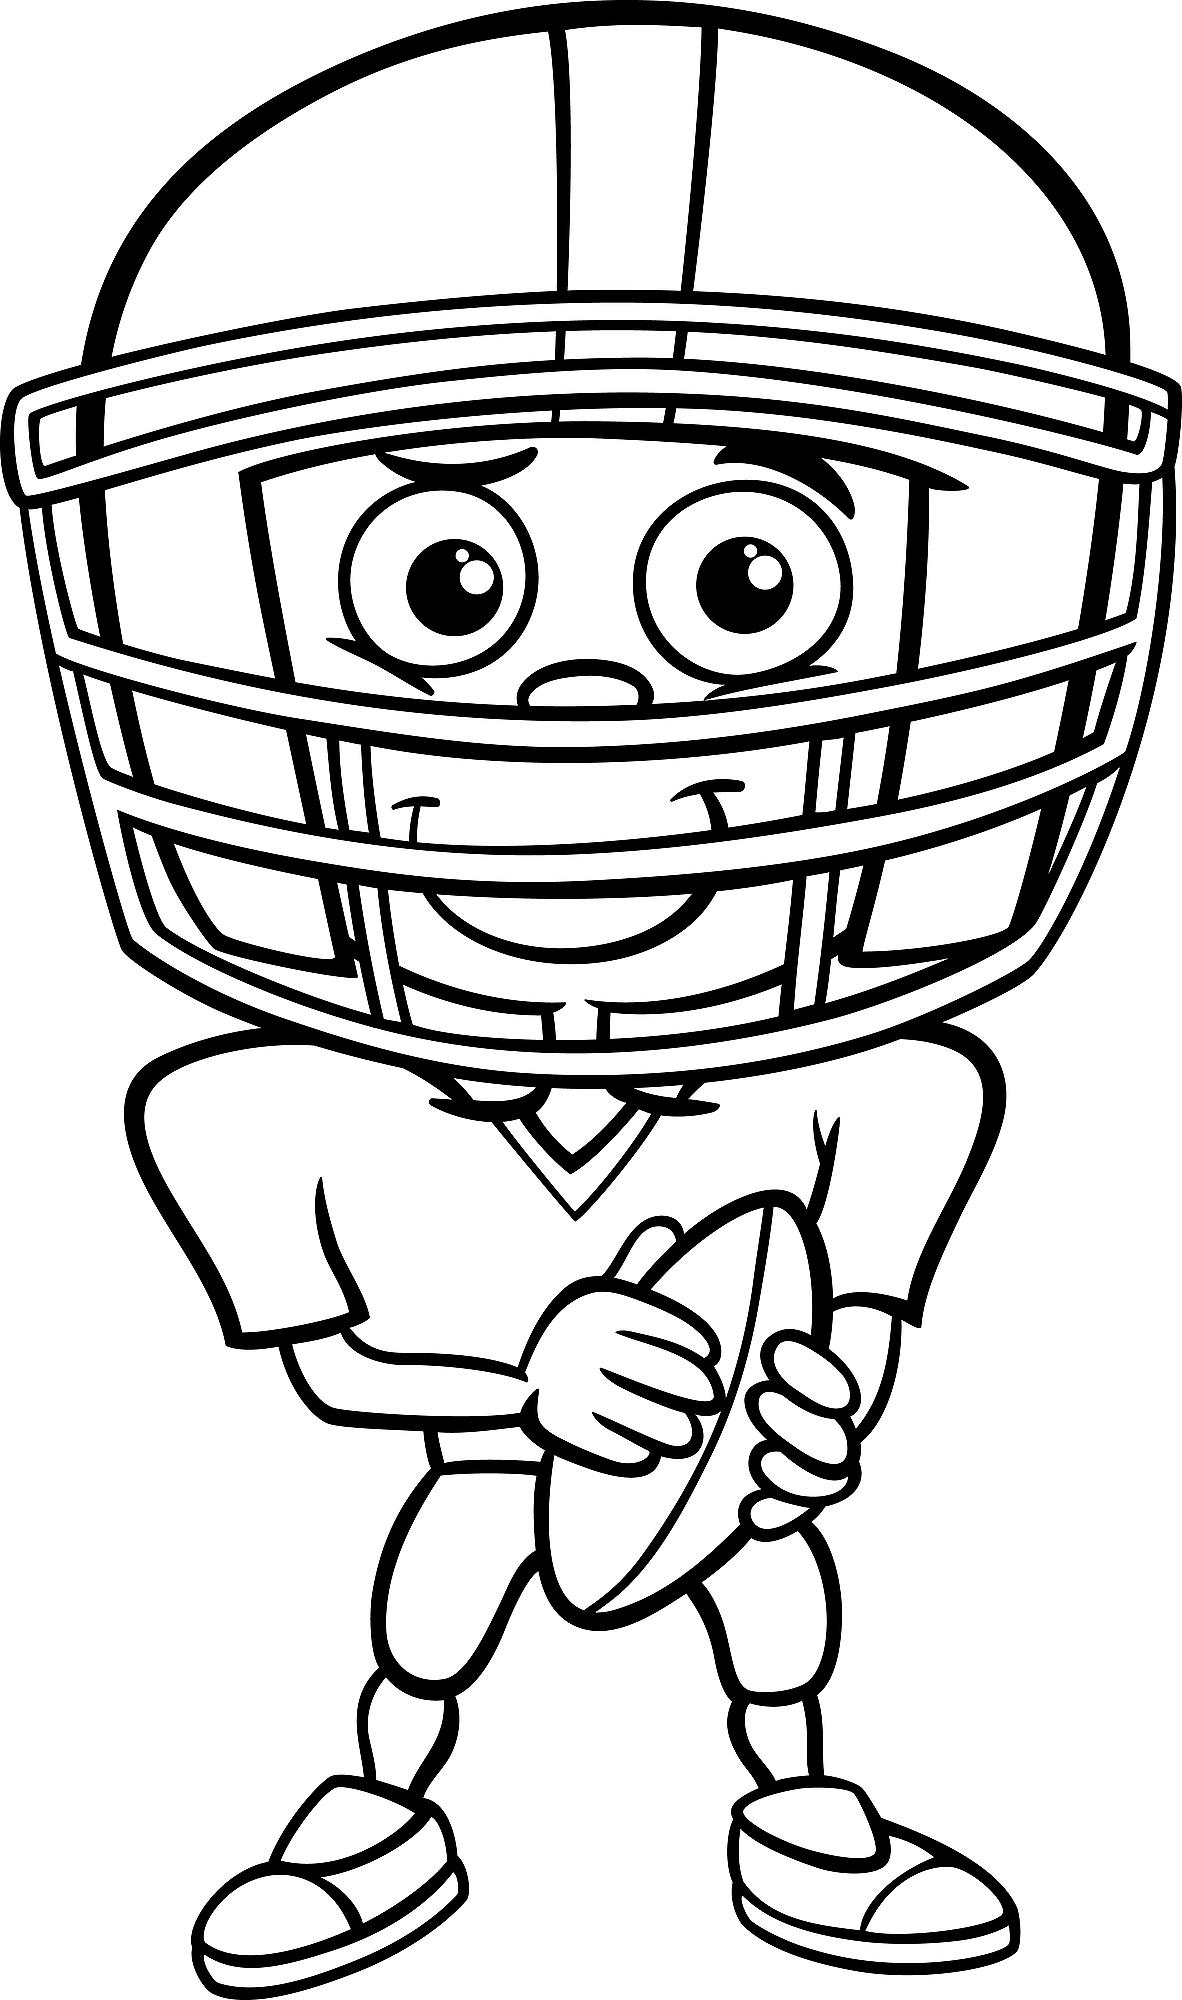 Football Coloring Pages Printable Sports Coloring Activity